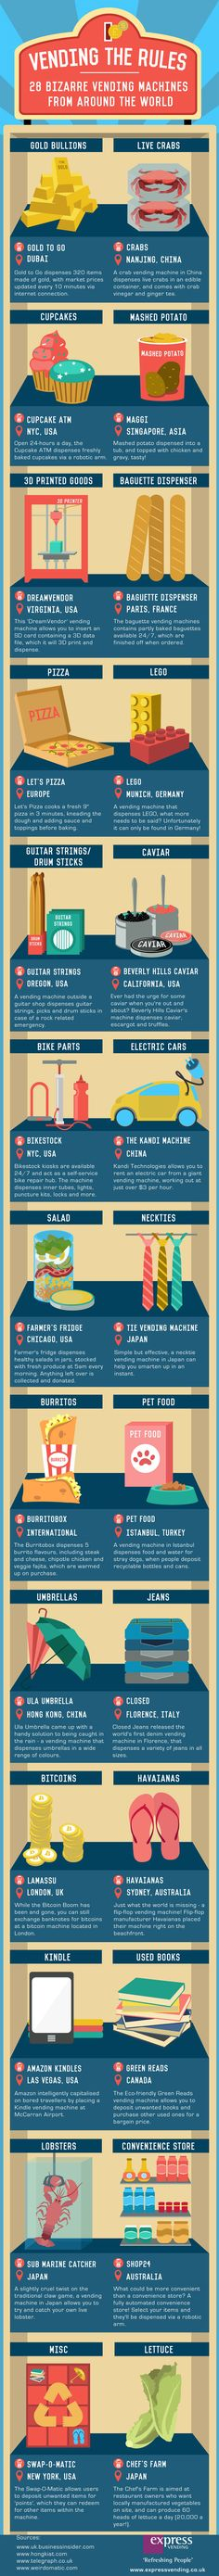 Vending The Rules: 28 Bizarre Vending Machines From Around The World #infographic #Travel #Tech